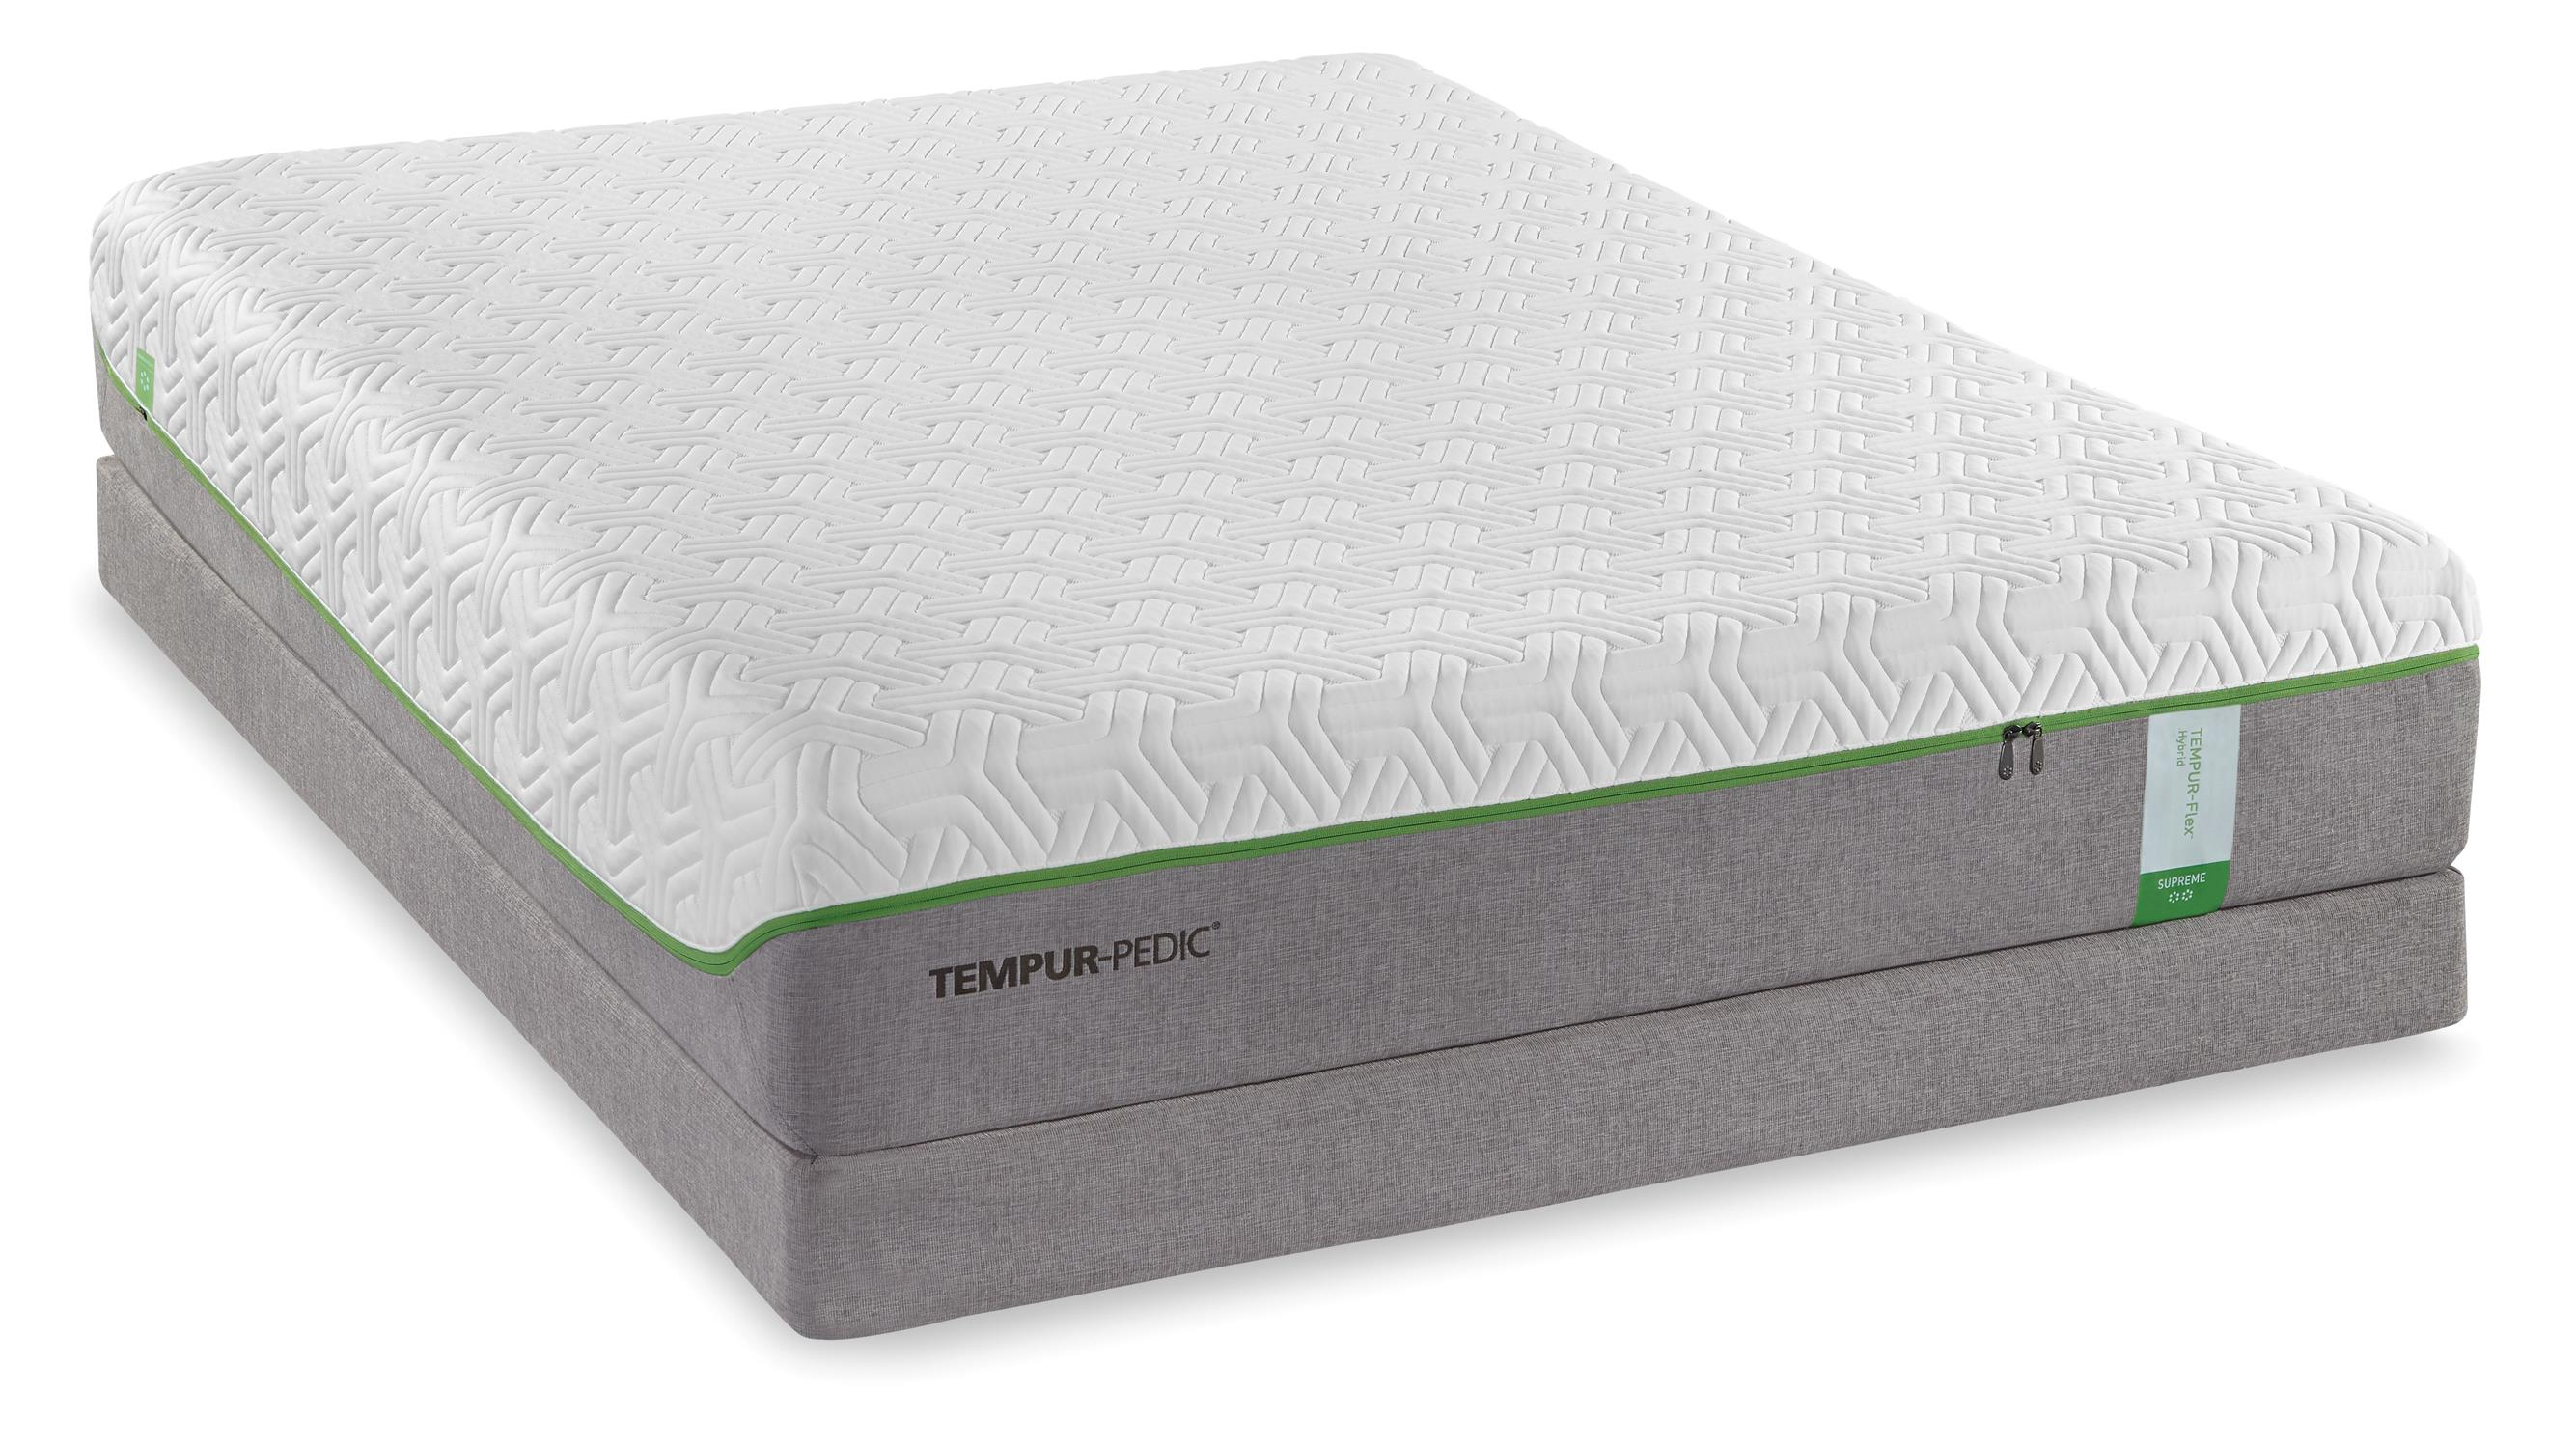 Tempur-Pedic® TEMPUR-Flex Supreme King Medium Plush Mattress Set - Item Number: 10116170+2x20510120